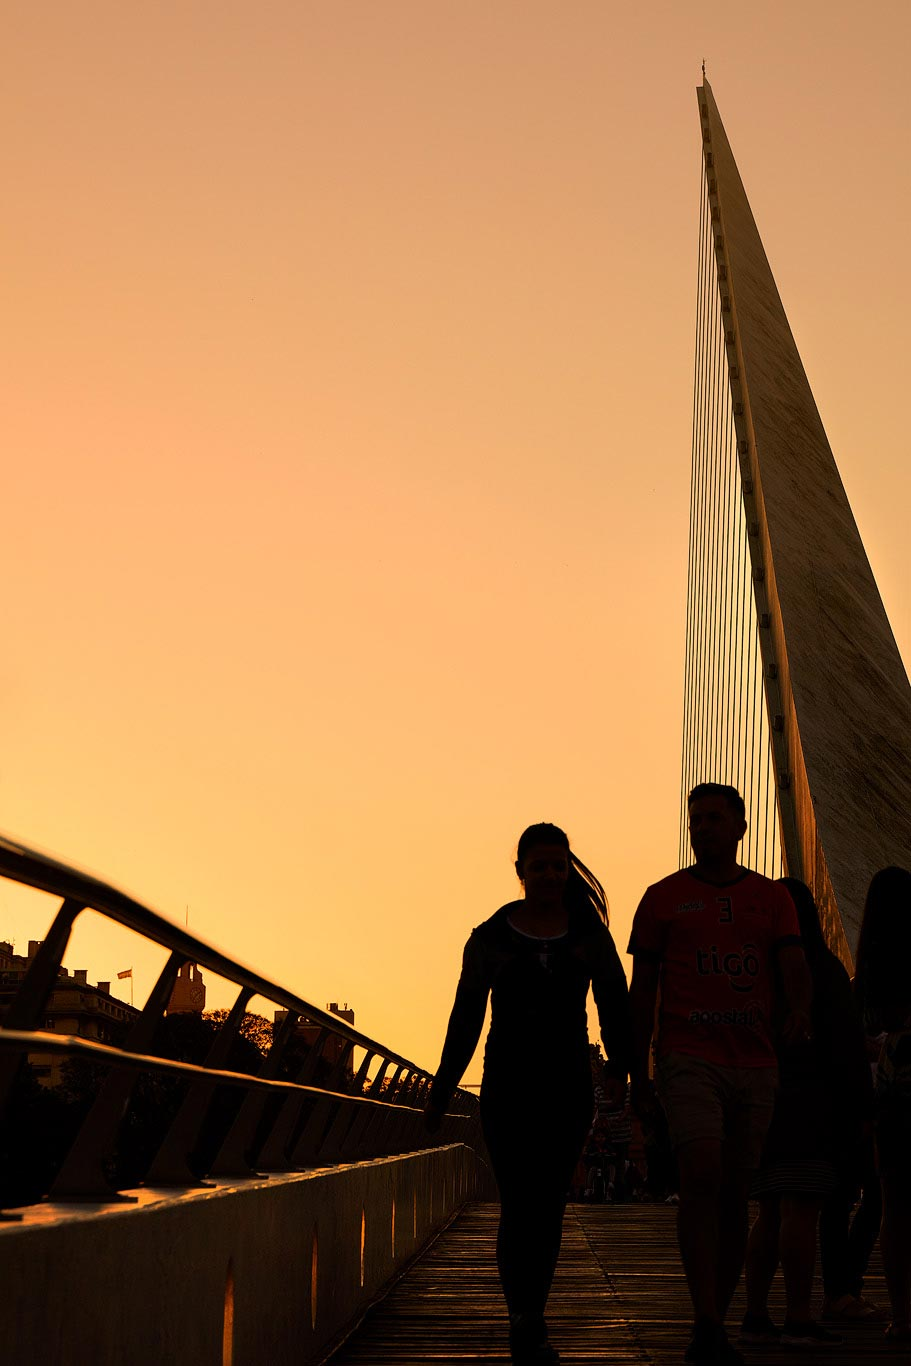 People walking on the Puente de la Mujer at sunset